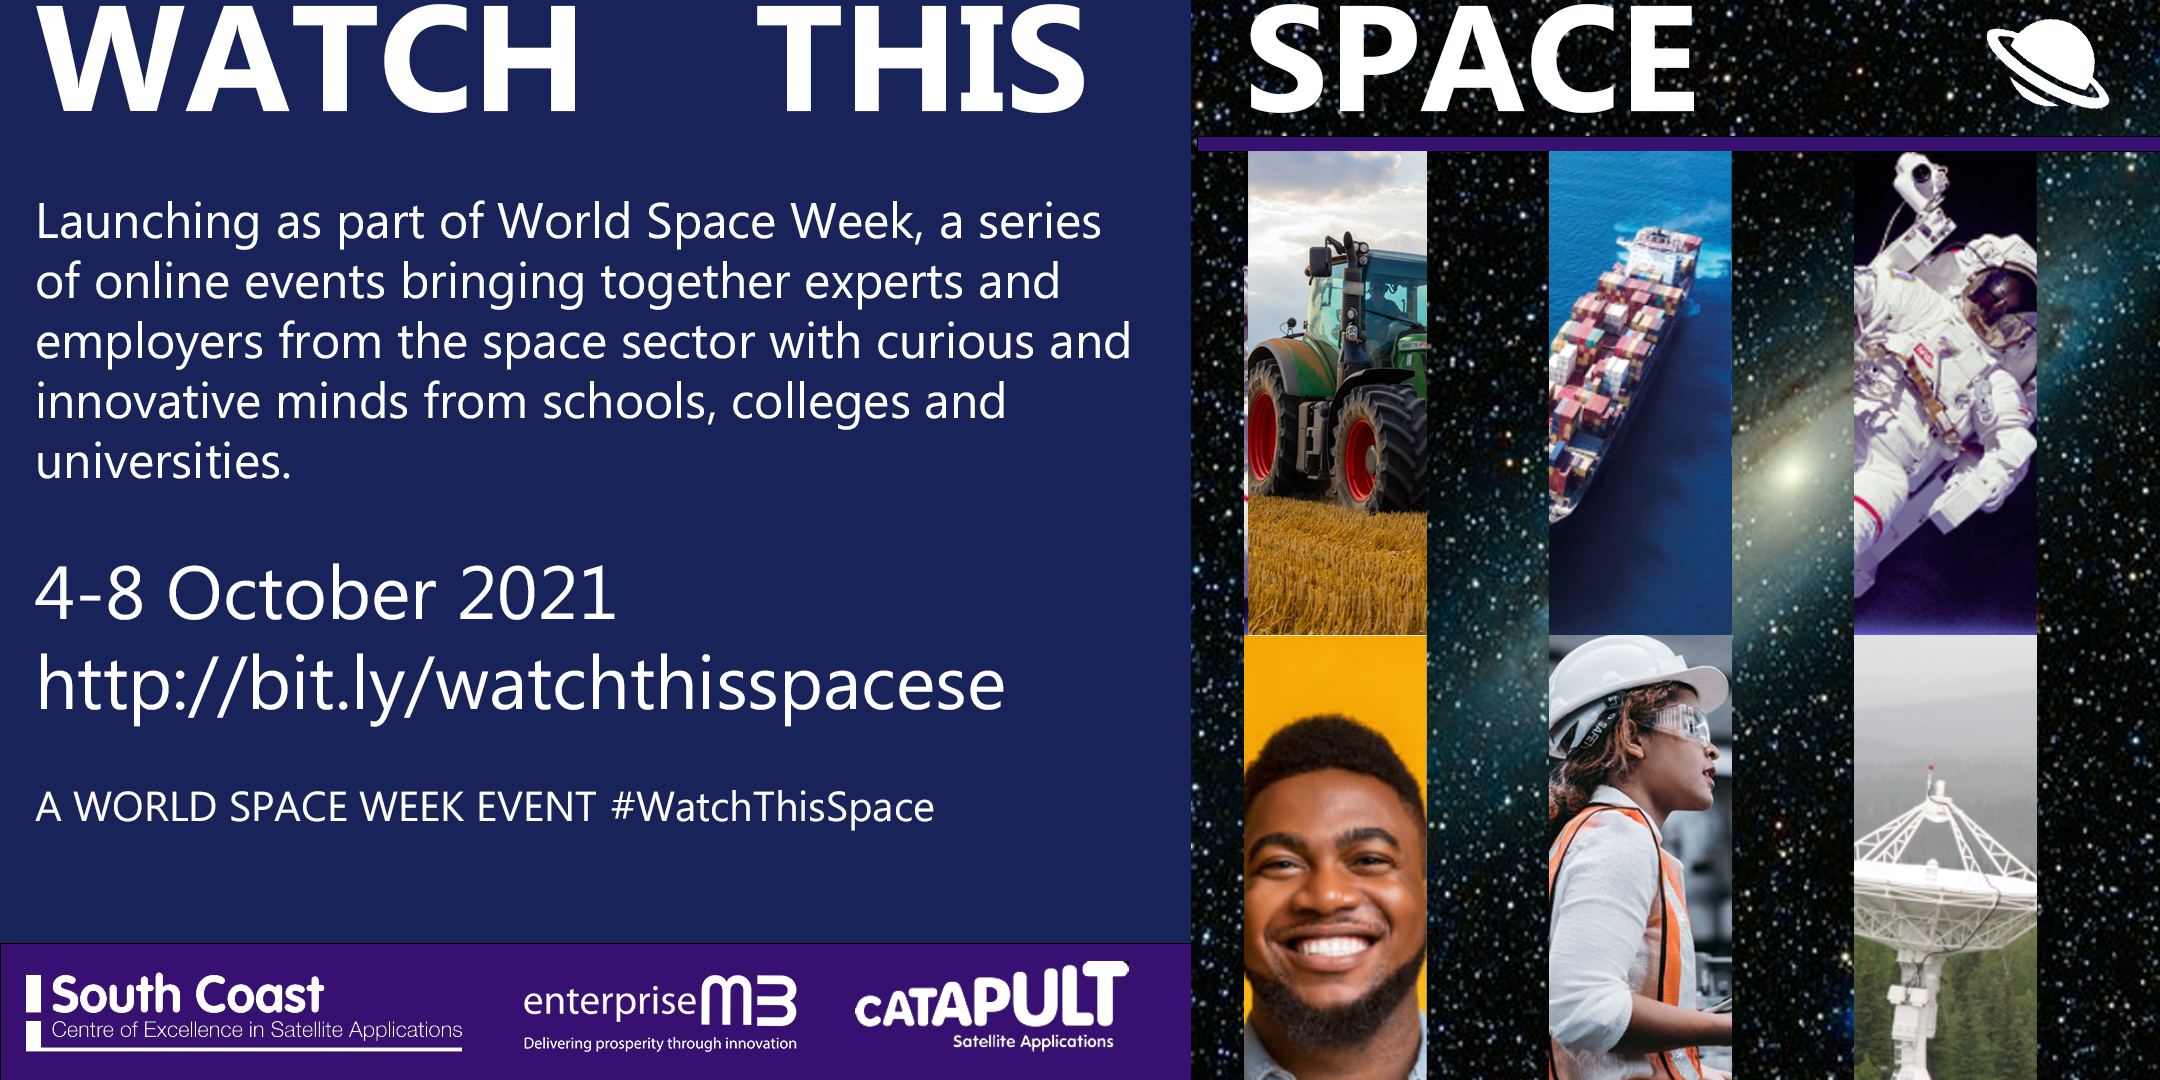 Watch-This-Space-6th-7th-October-2021